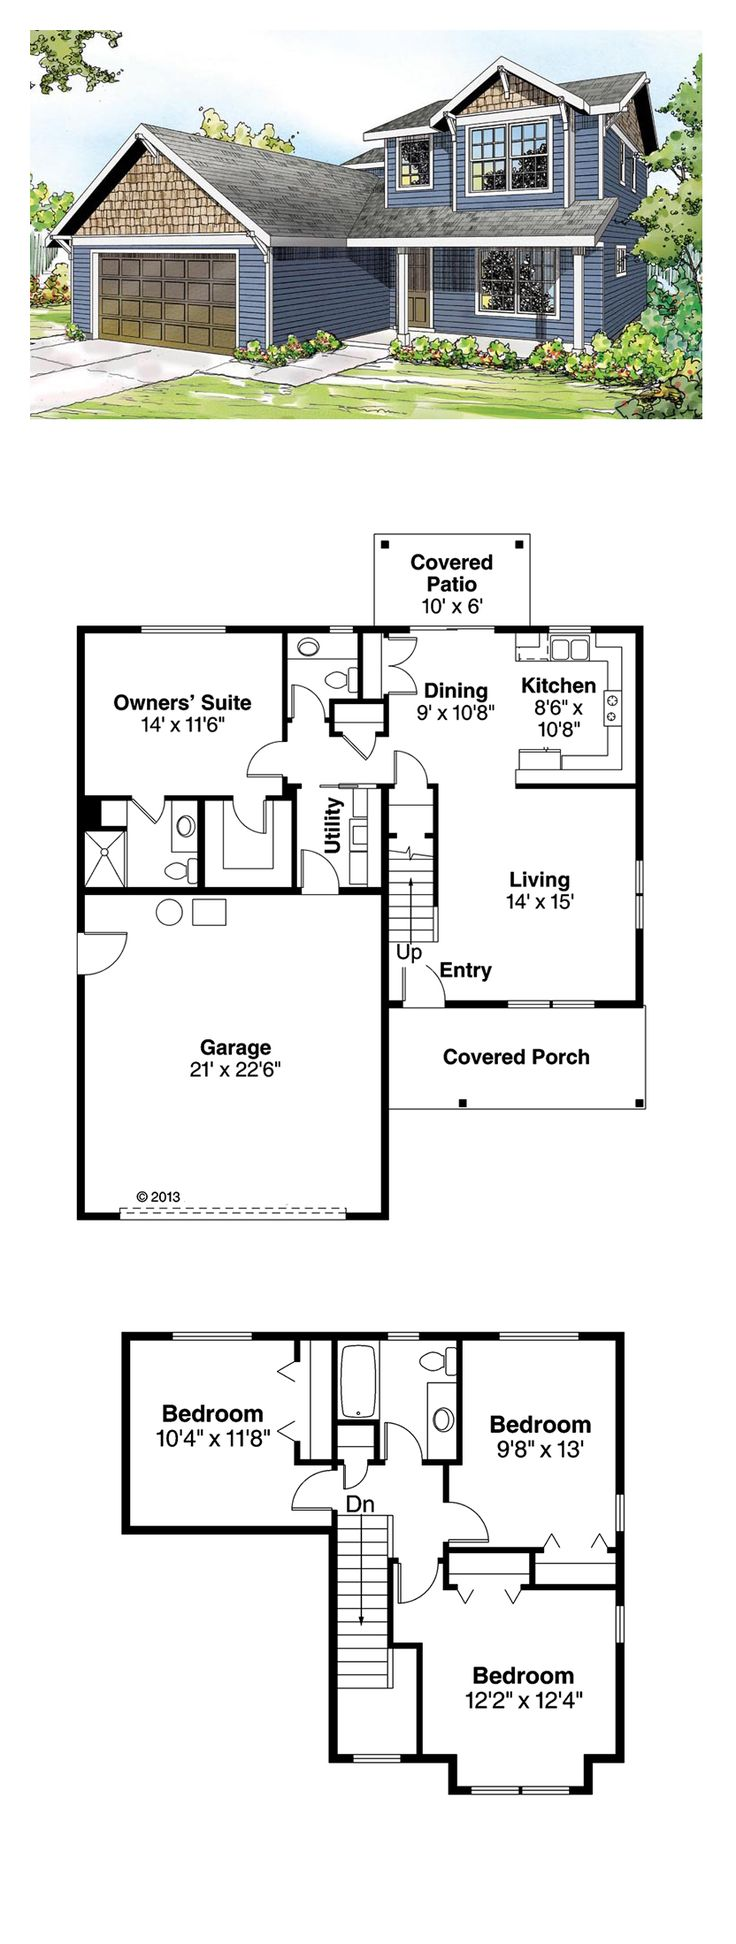 17 best images about saltbox house plans on pinterest for Two story saltbox house plans